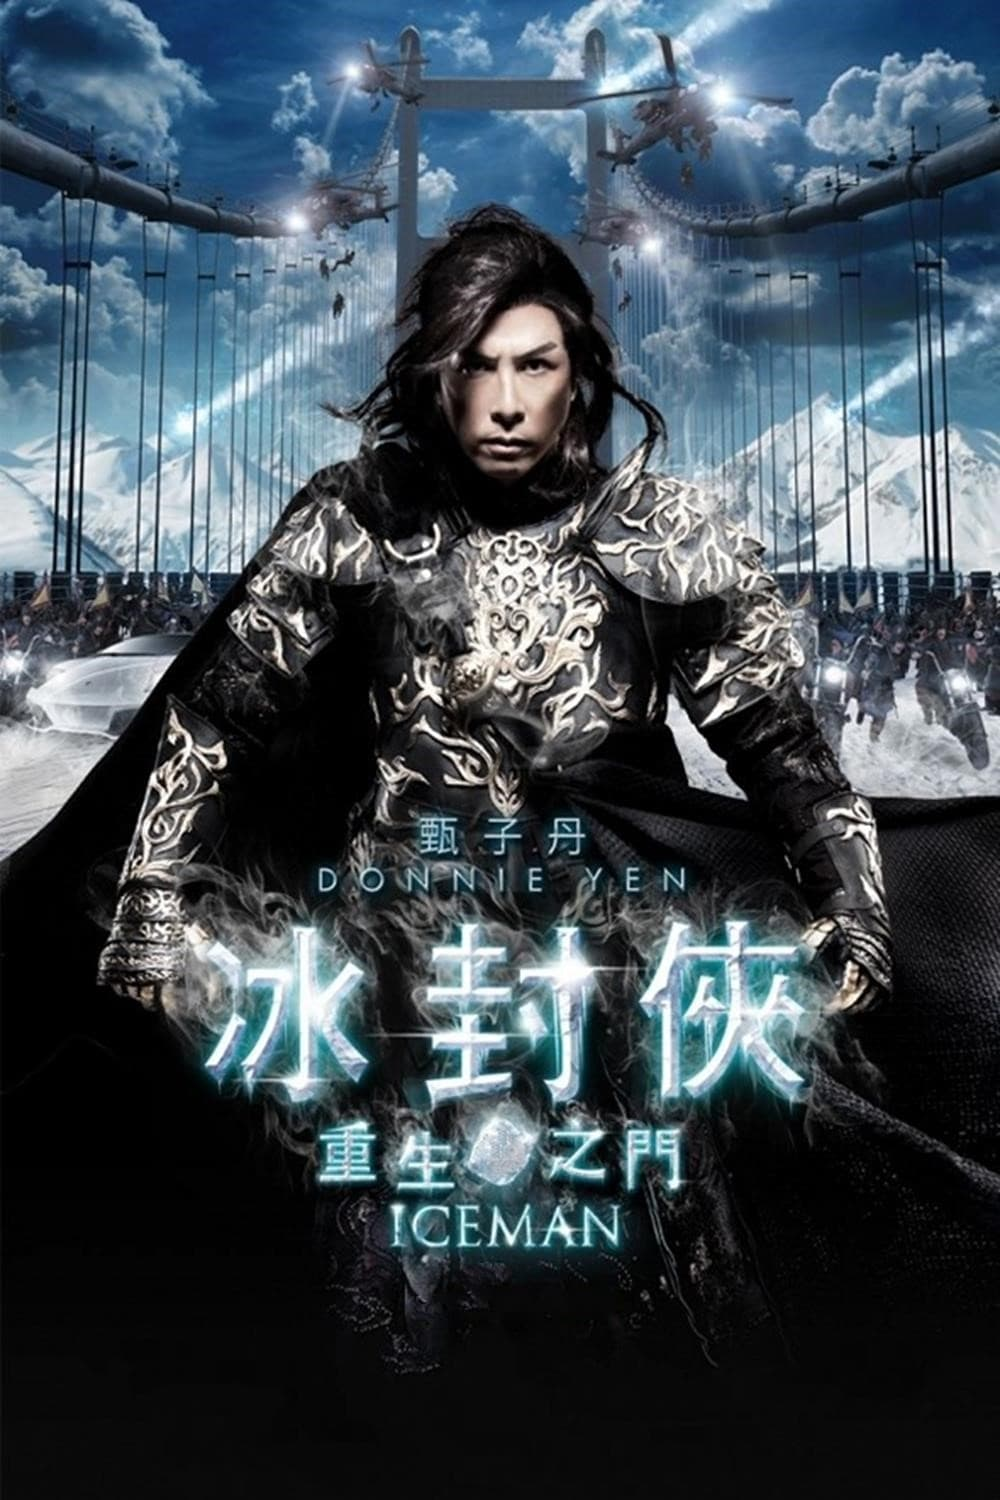 Poster and image movie Iceman